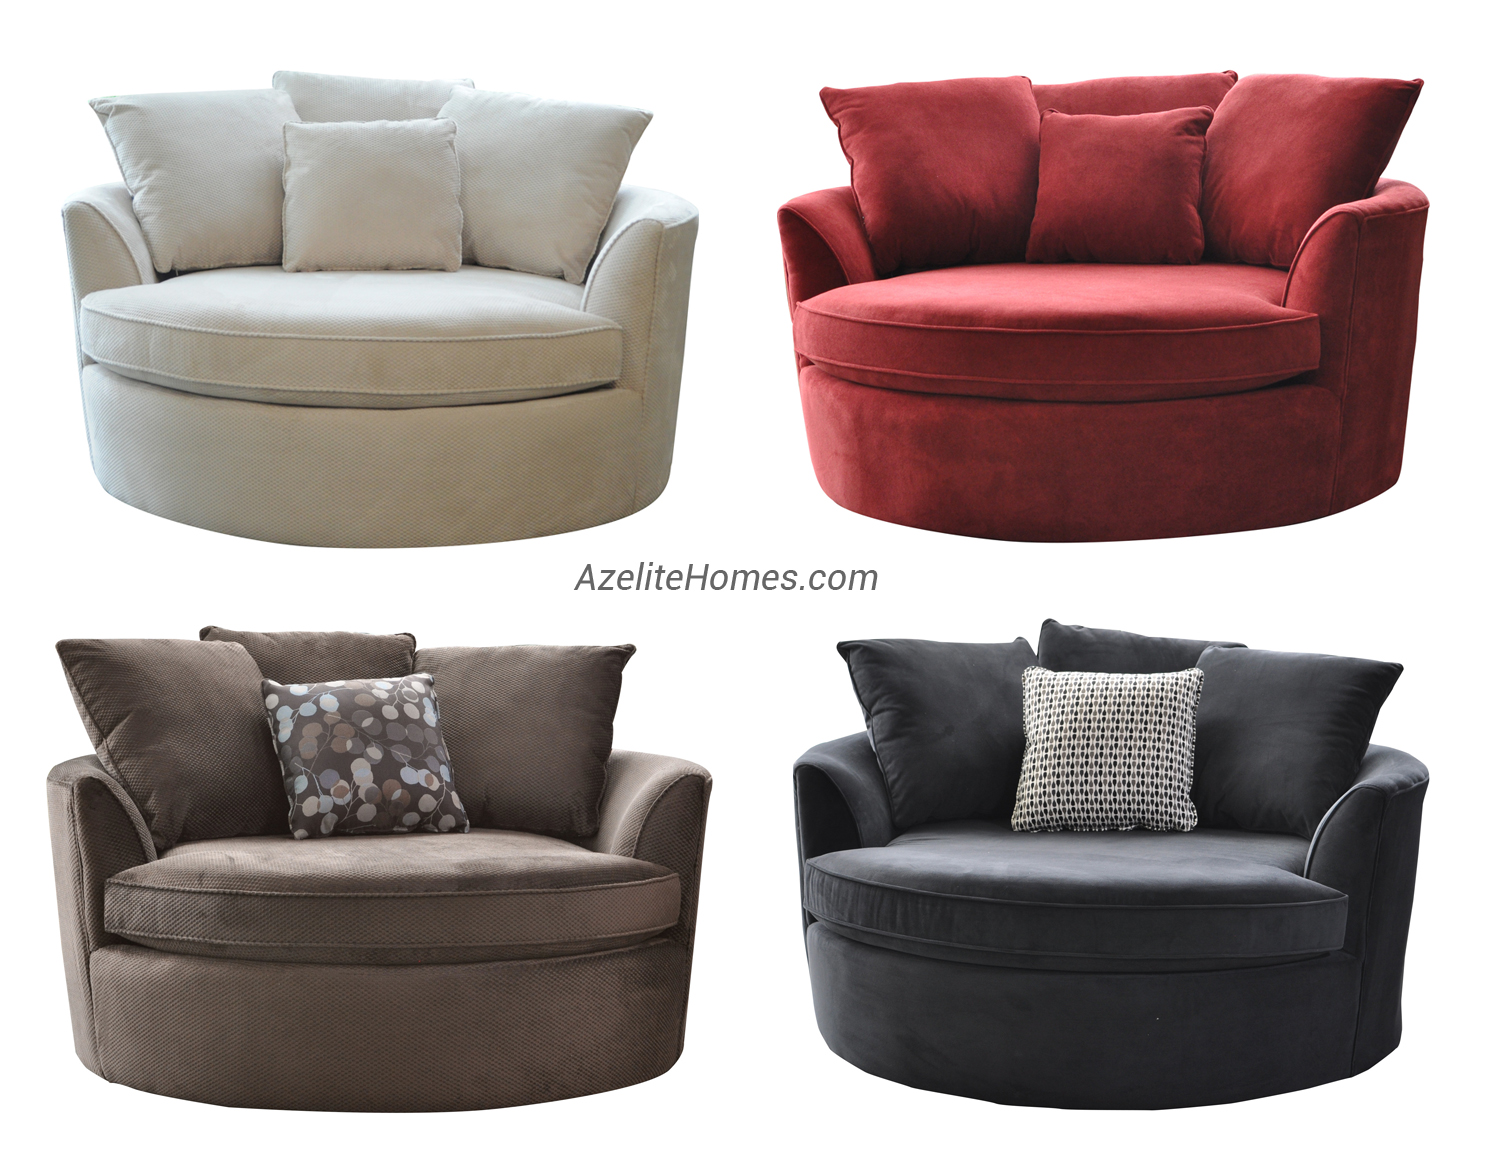 Modern Upholstered Microfiber Fabric Round Swivel Loveseat Chair with  Hardwood Frame and Removable Seat Cushion with Black White Brown and Red  Color Options